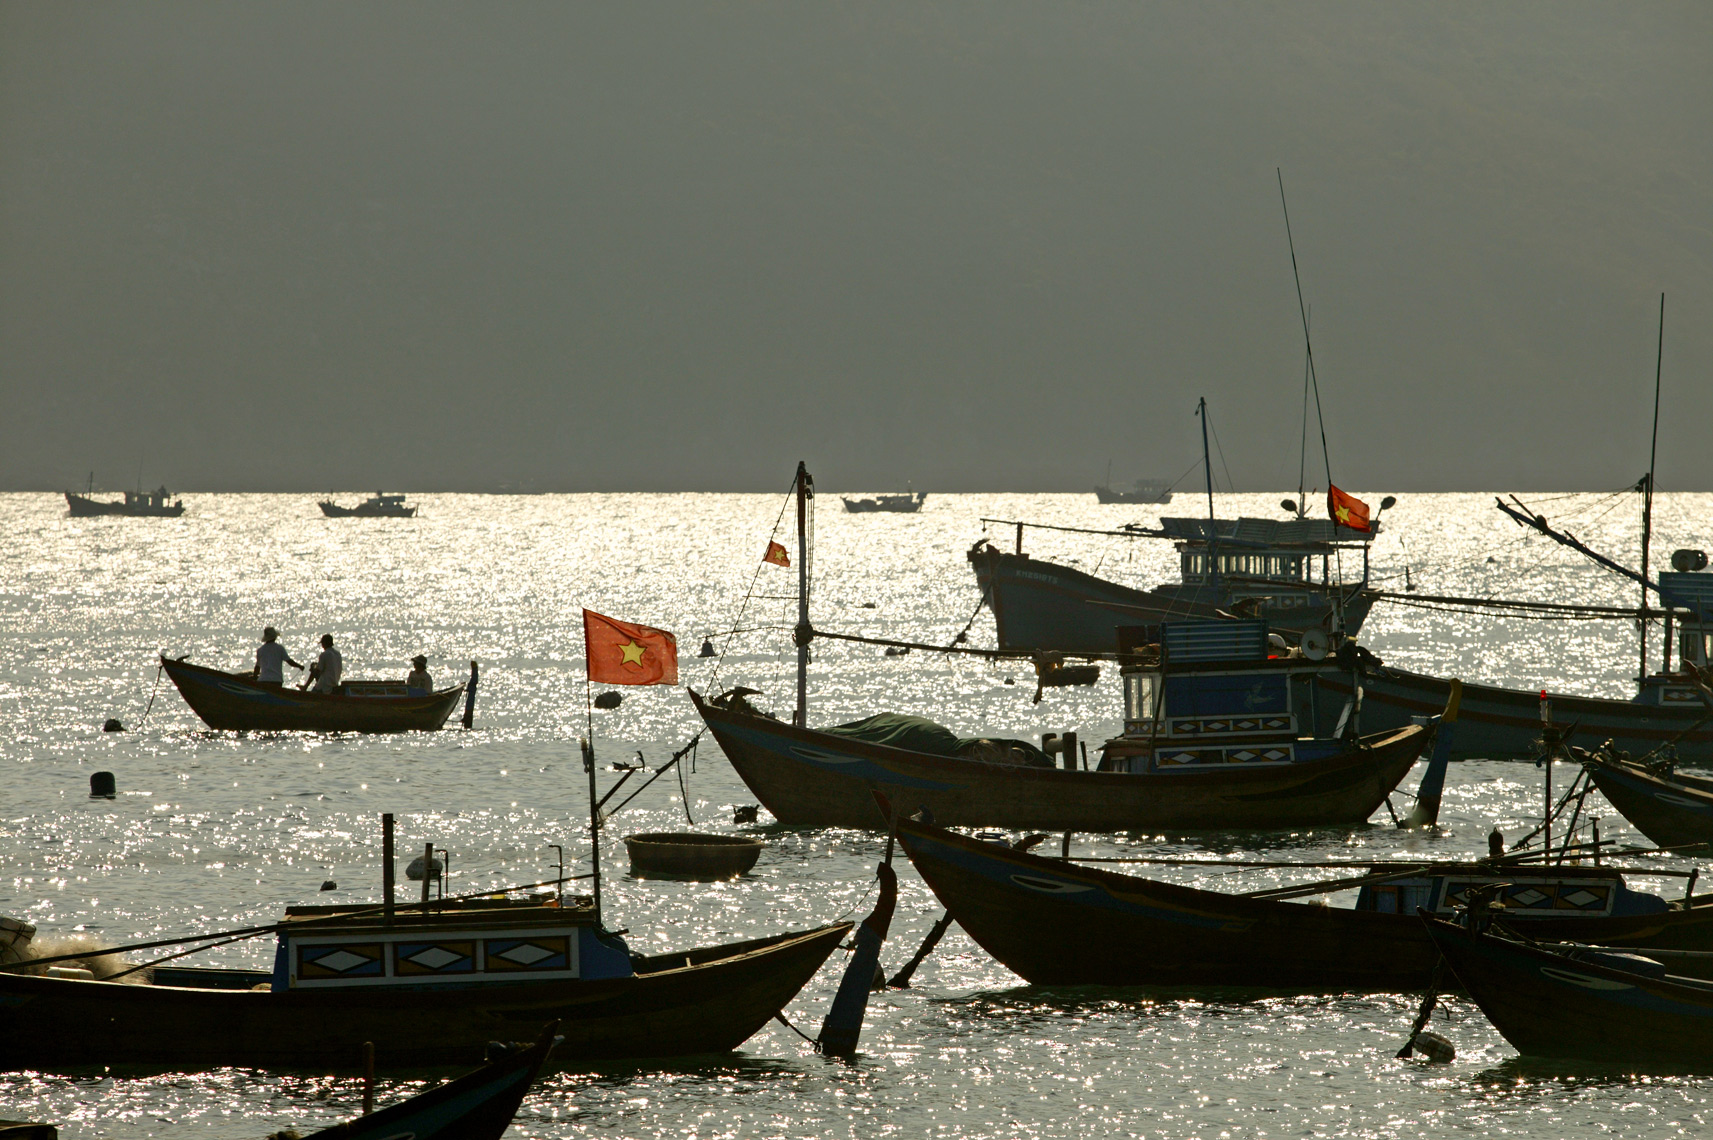 Fishing boats rest in South China Sea/Steve Mason Photography